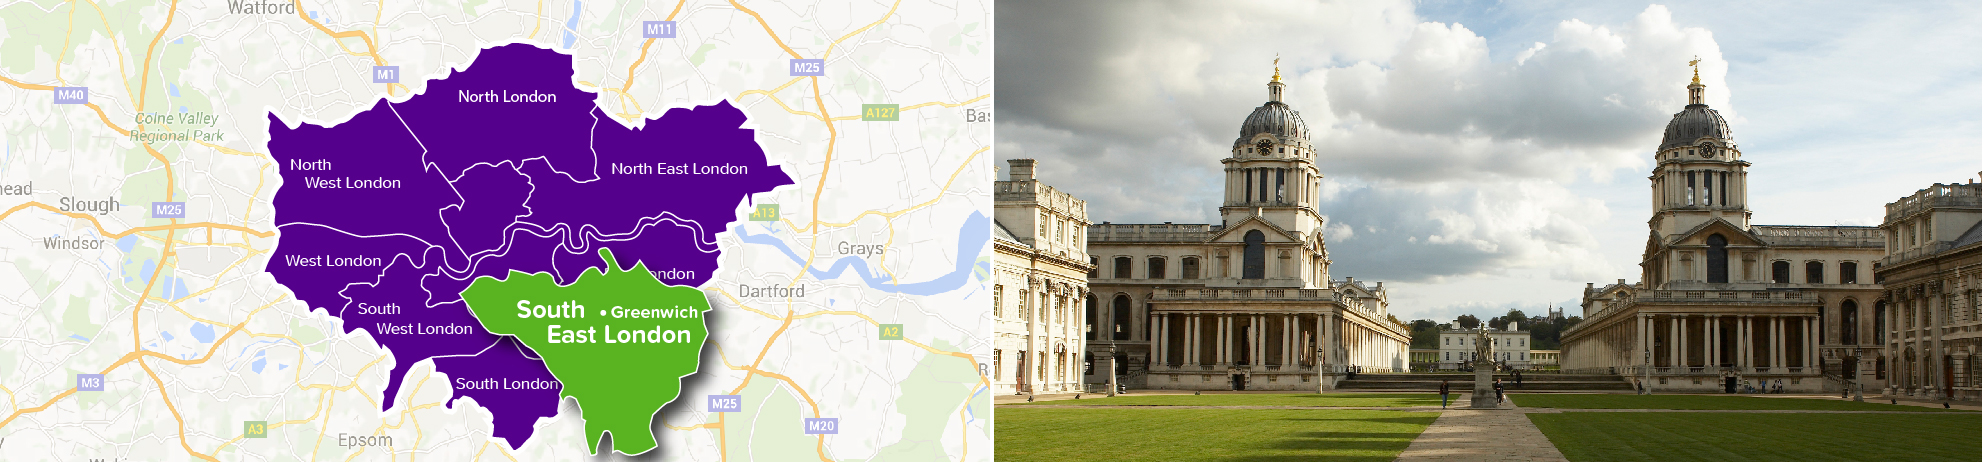 Map of Greenwich, and Greenwich buildings